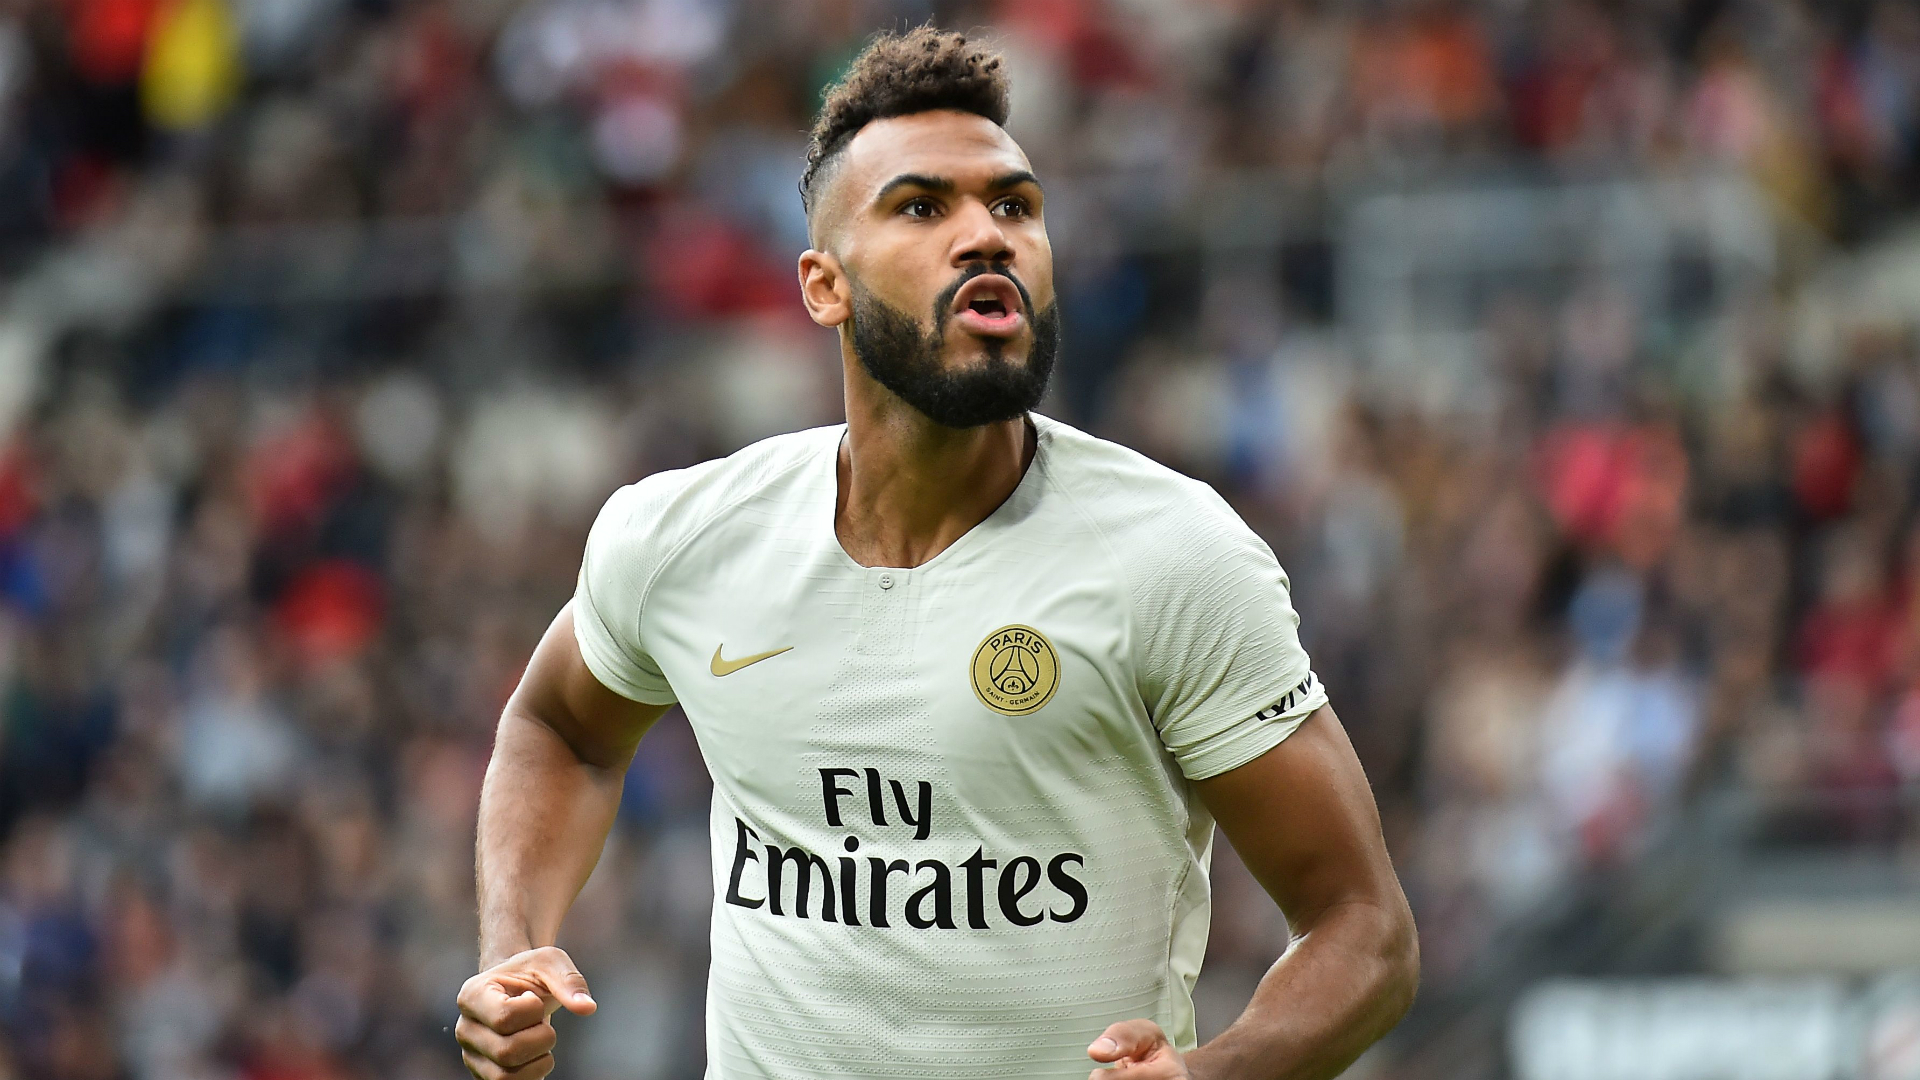 Choupo-Moting pode estar a caminho do Bayern de Munique